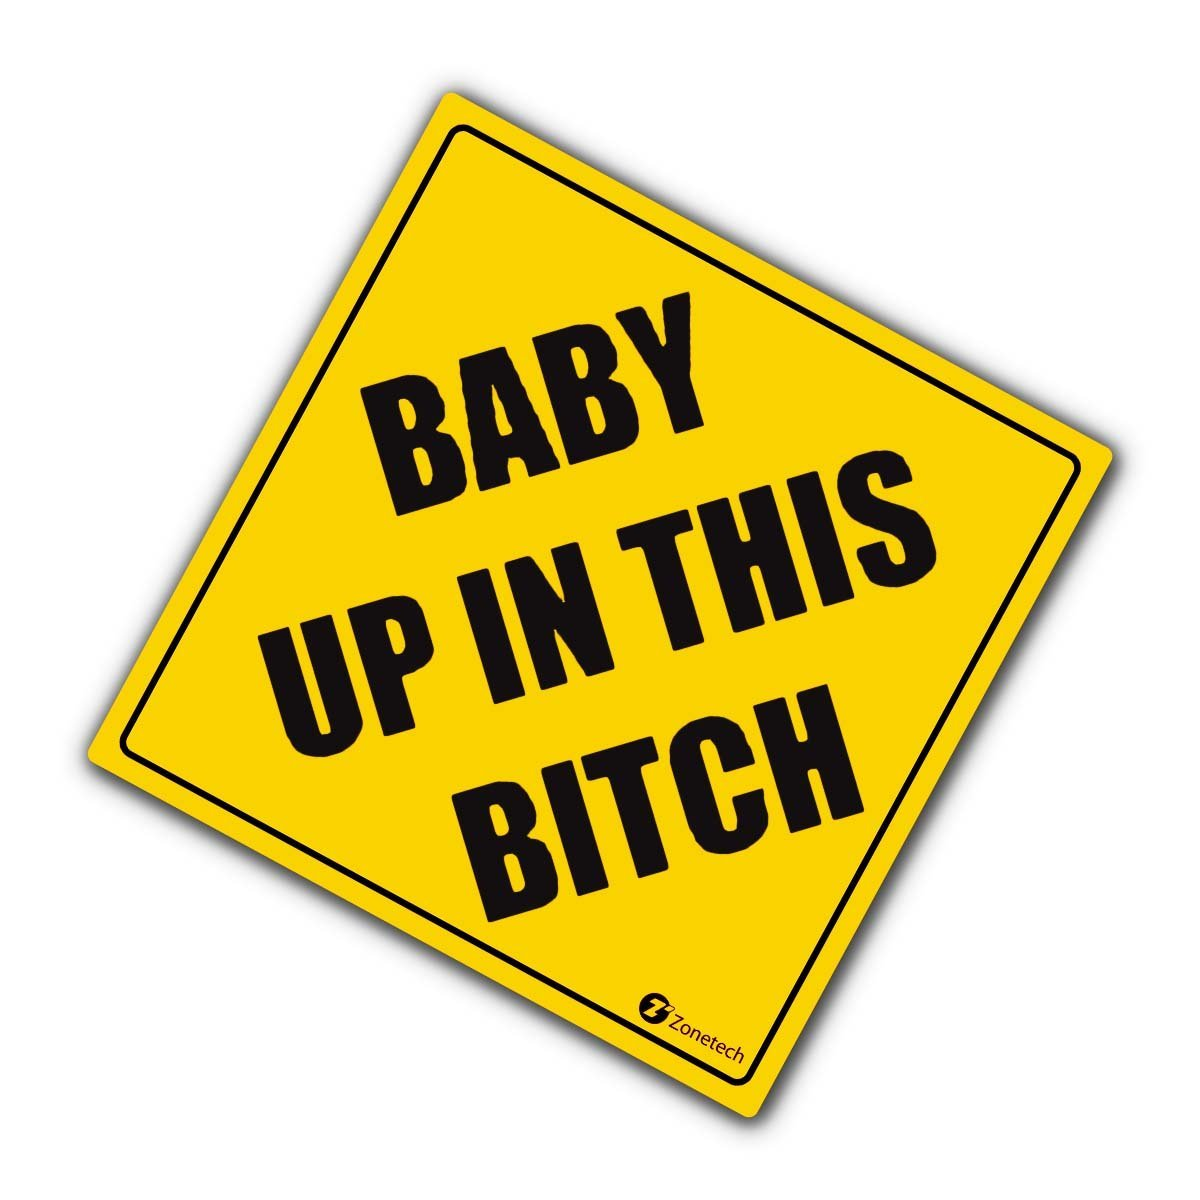 Zone Tech Baby Up In This Bitch Vehicle Safety Sticker Premium Quality Convenient Reflective Baby Up On This Bitch Vehicle Safety Funny Sign Sticker